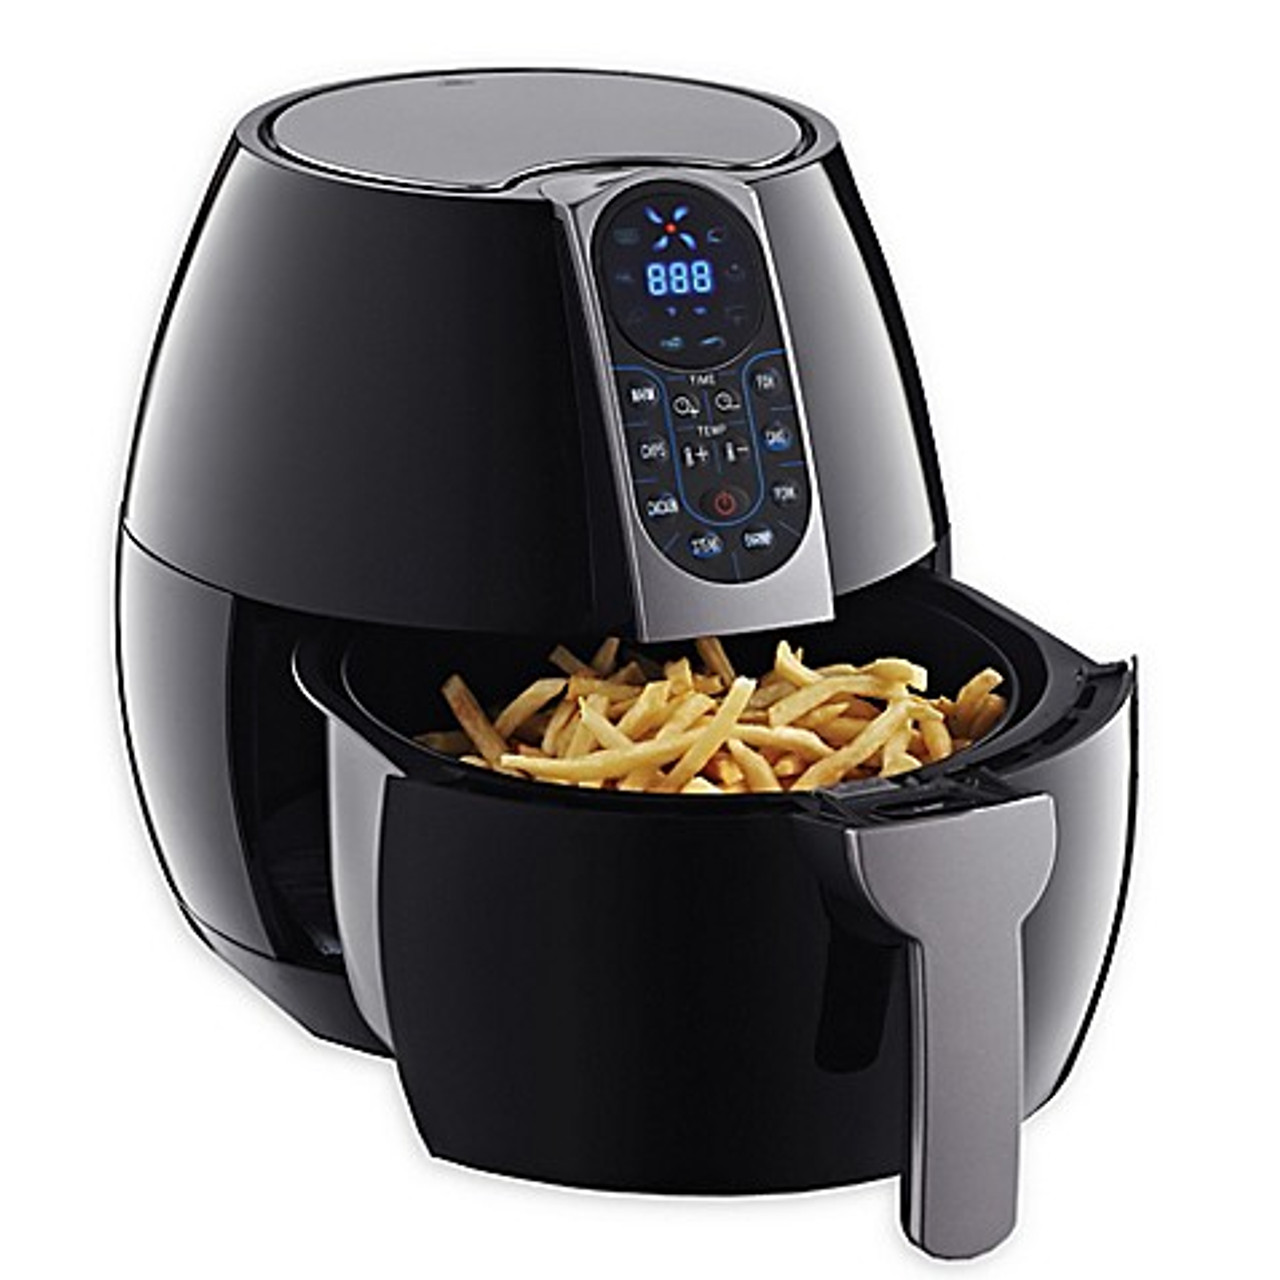 Gowise Air Fryer - 3.7 Qt - Choose either (Black, Red, or White)